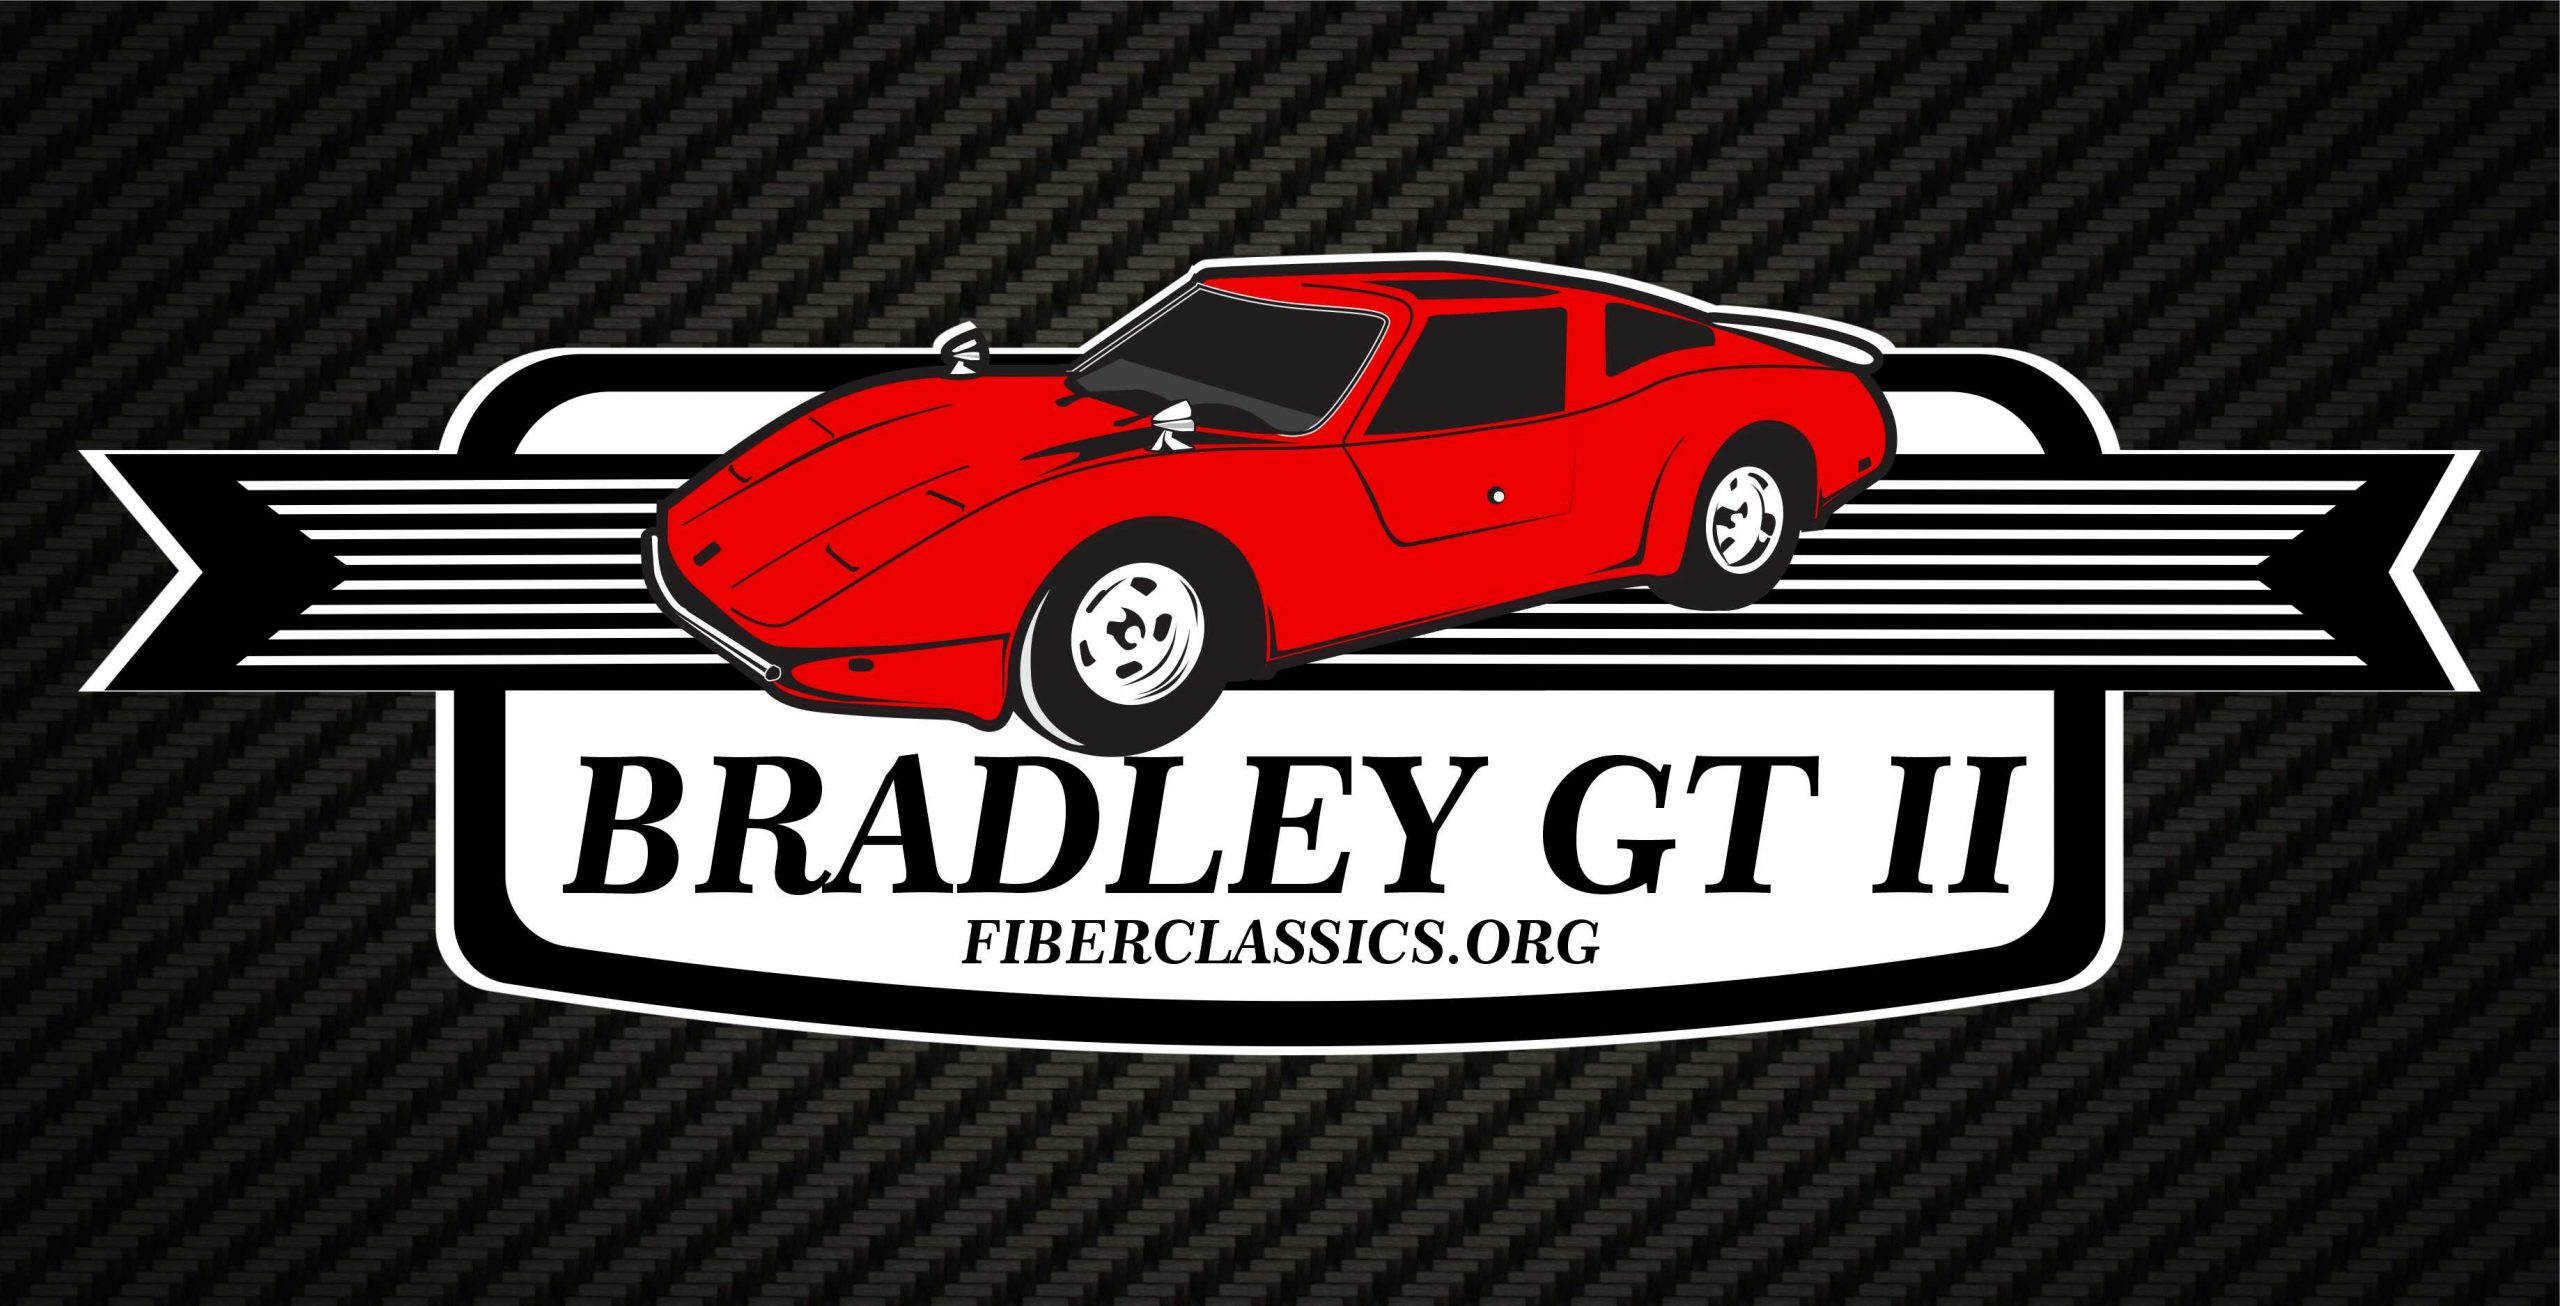 Bradley GT2 License Plate by Fiberclassics